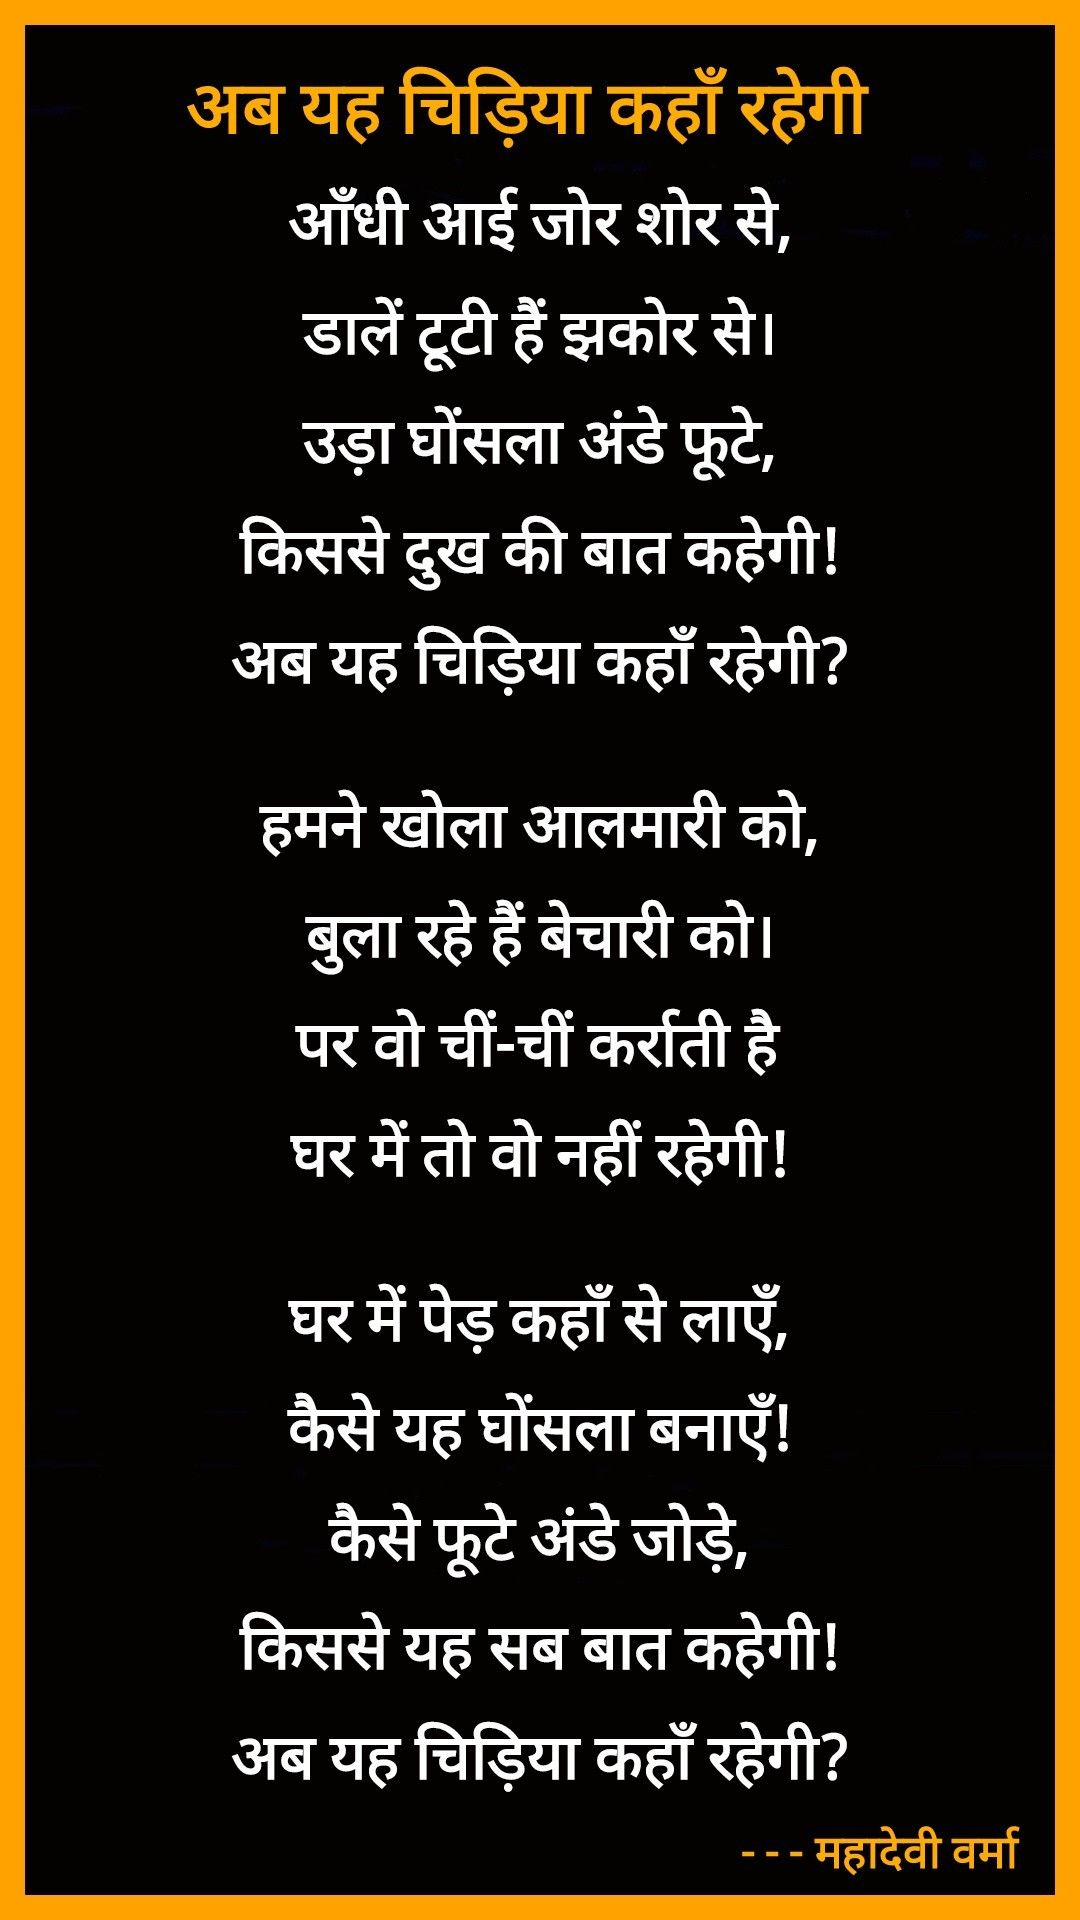 New  Hindi Kavita Best Poems For Kids 2021 From Uploaded by user